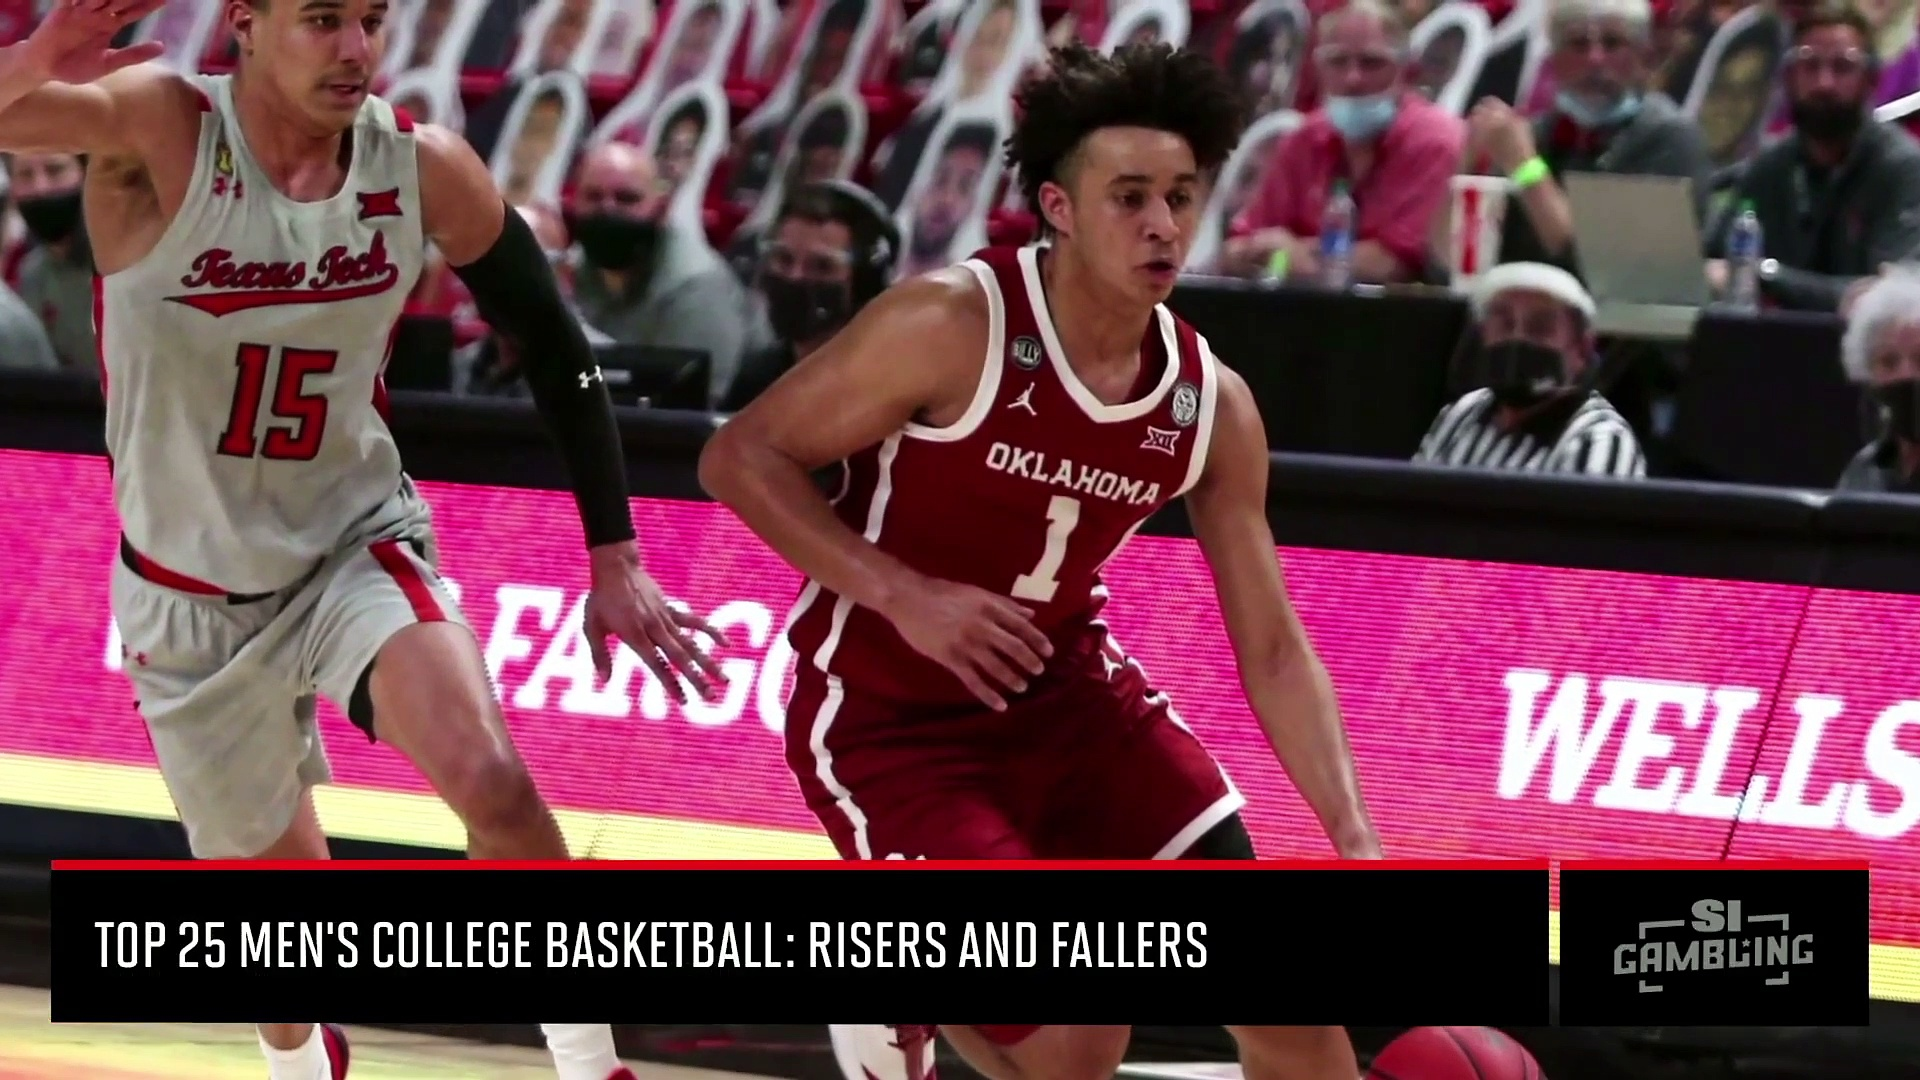 College basketball risers and fallers